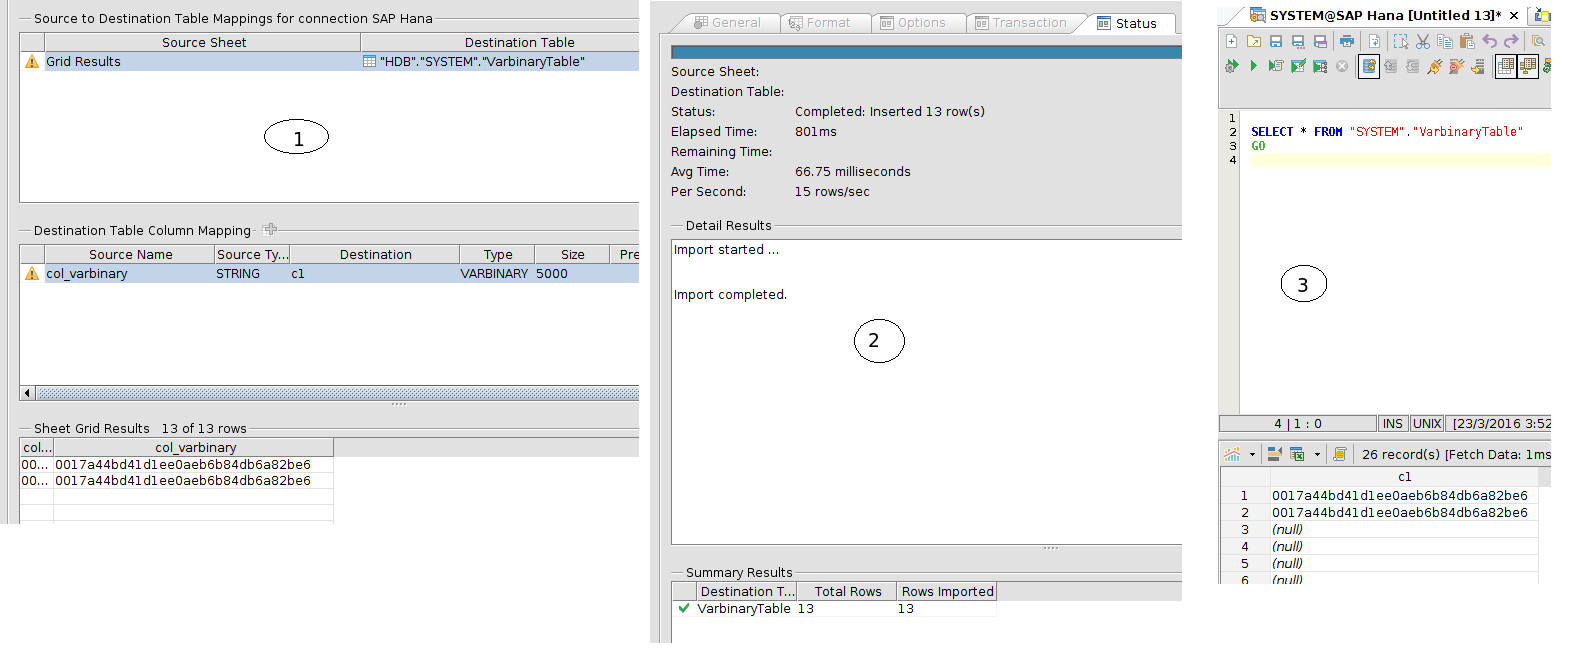 13646: Insert statement is not generated with right values for